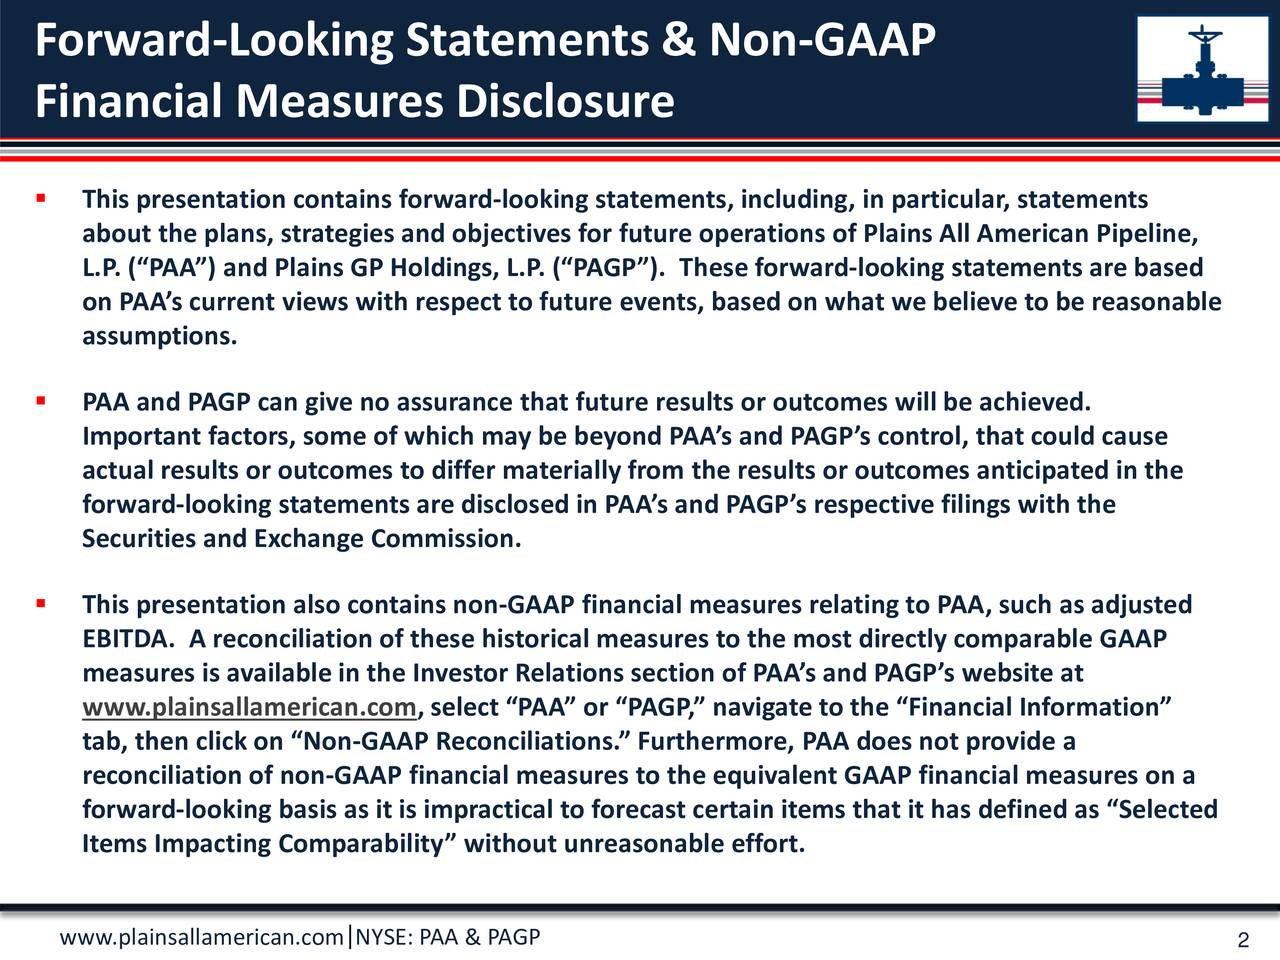 Financial Measures Disclosure This presentation contains forward-looking statements, including, in particular, statements about the plans, strategies and objectives for future operations of Plains All American Pipeline, L.P. (PAA) and Plains GP Holdings, L.P. (PAGP). These forward-looking statements are based on PAAs current views with respect to future events, based on what we believe to be reasonable assumptions. PAA and PAGP can give no assurance that future results or outcomes will be achieved. Important factors, some of which may be beyond PAAs and PAGPs control, that could cause actual results or outcomes to differ materially from the results or outcomes anticipated in the forward-looking statements are disclosed in PAAs and PAGPs respective filings with the Securities and Exchange Commission. This presentation also contains non-GAAP financial measures relating to PAA, such as adjusted EBITDA. A reconciliation of these historical measures to the most directly comparable GAAP measures is available in the Investor Relations section of PAAs and PAGs ebsite at www.plainsallamerican.com, select PAA or PAGP, navigate to the Financial Information tab, then click on Non-GAAP Reconciliations.Furthermore, PAA does not provide a reconciliation of non-GAAP financial measures to the equivalent GAAP financial measures on a forward-looking basis as it is impractical to forecast certain items that it has defined as Selected Items Impacting Comparability without unreasonable effort. www.plainsallamerican.com NYSE: PAA & PAGP